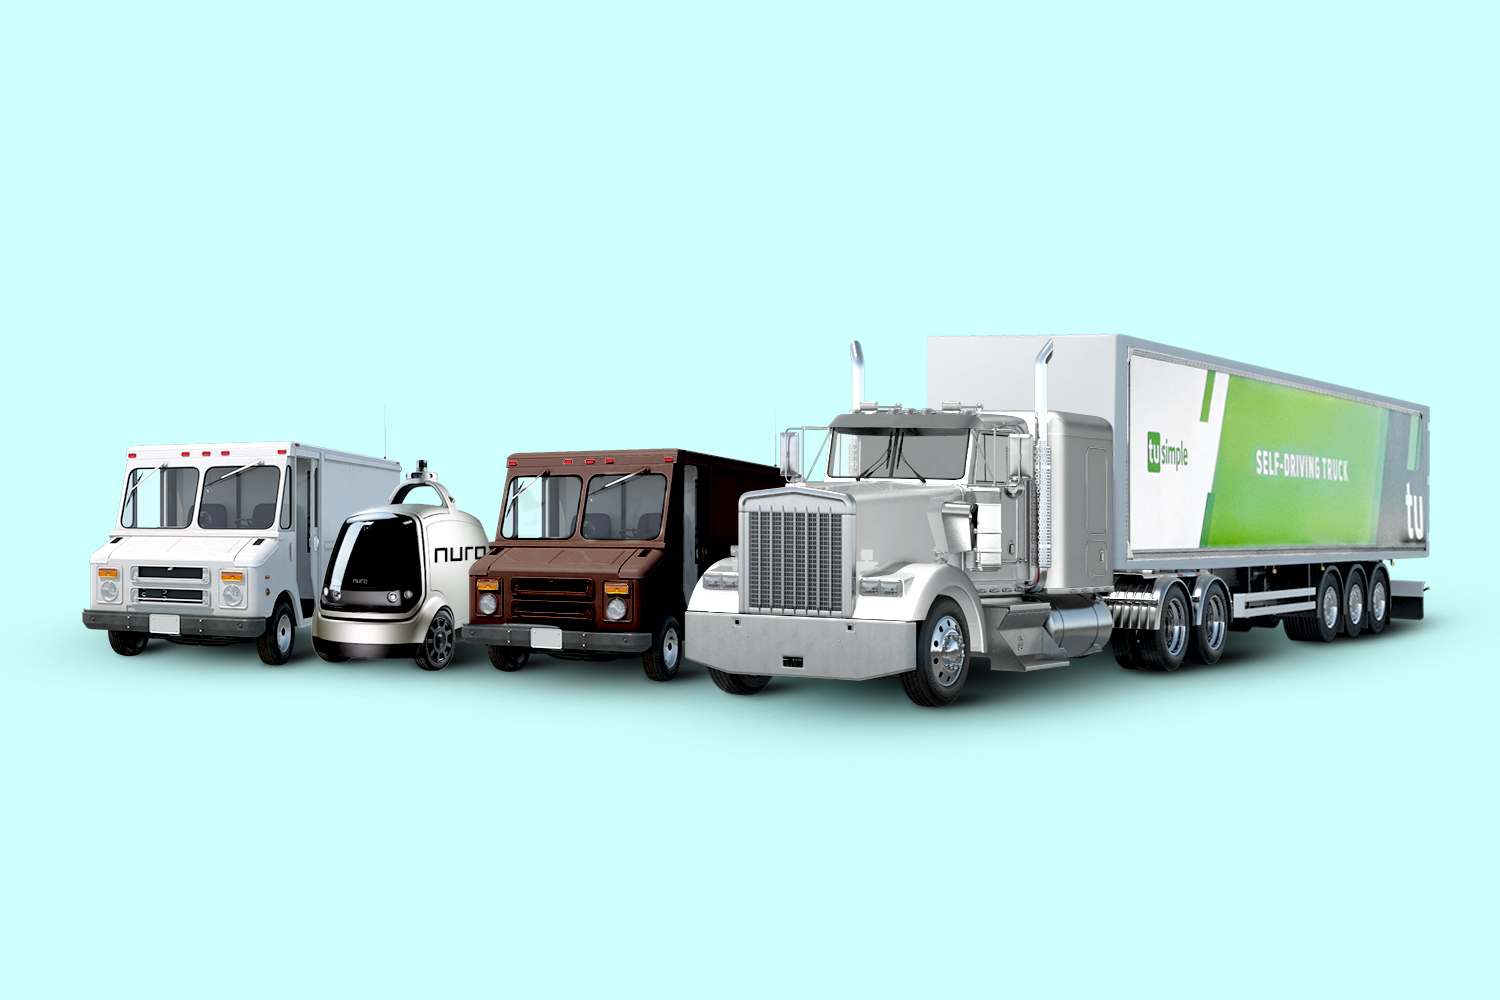 Self-driving delivery trucks from Nuro and TuSimple alongside the more conventional UPS/USPS/Fedex boxy trucks